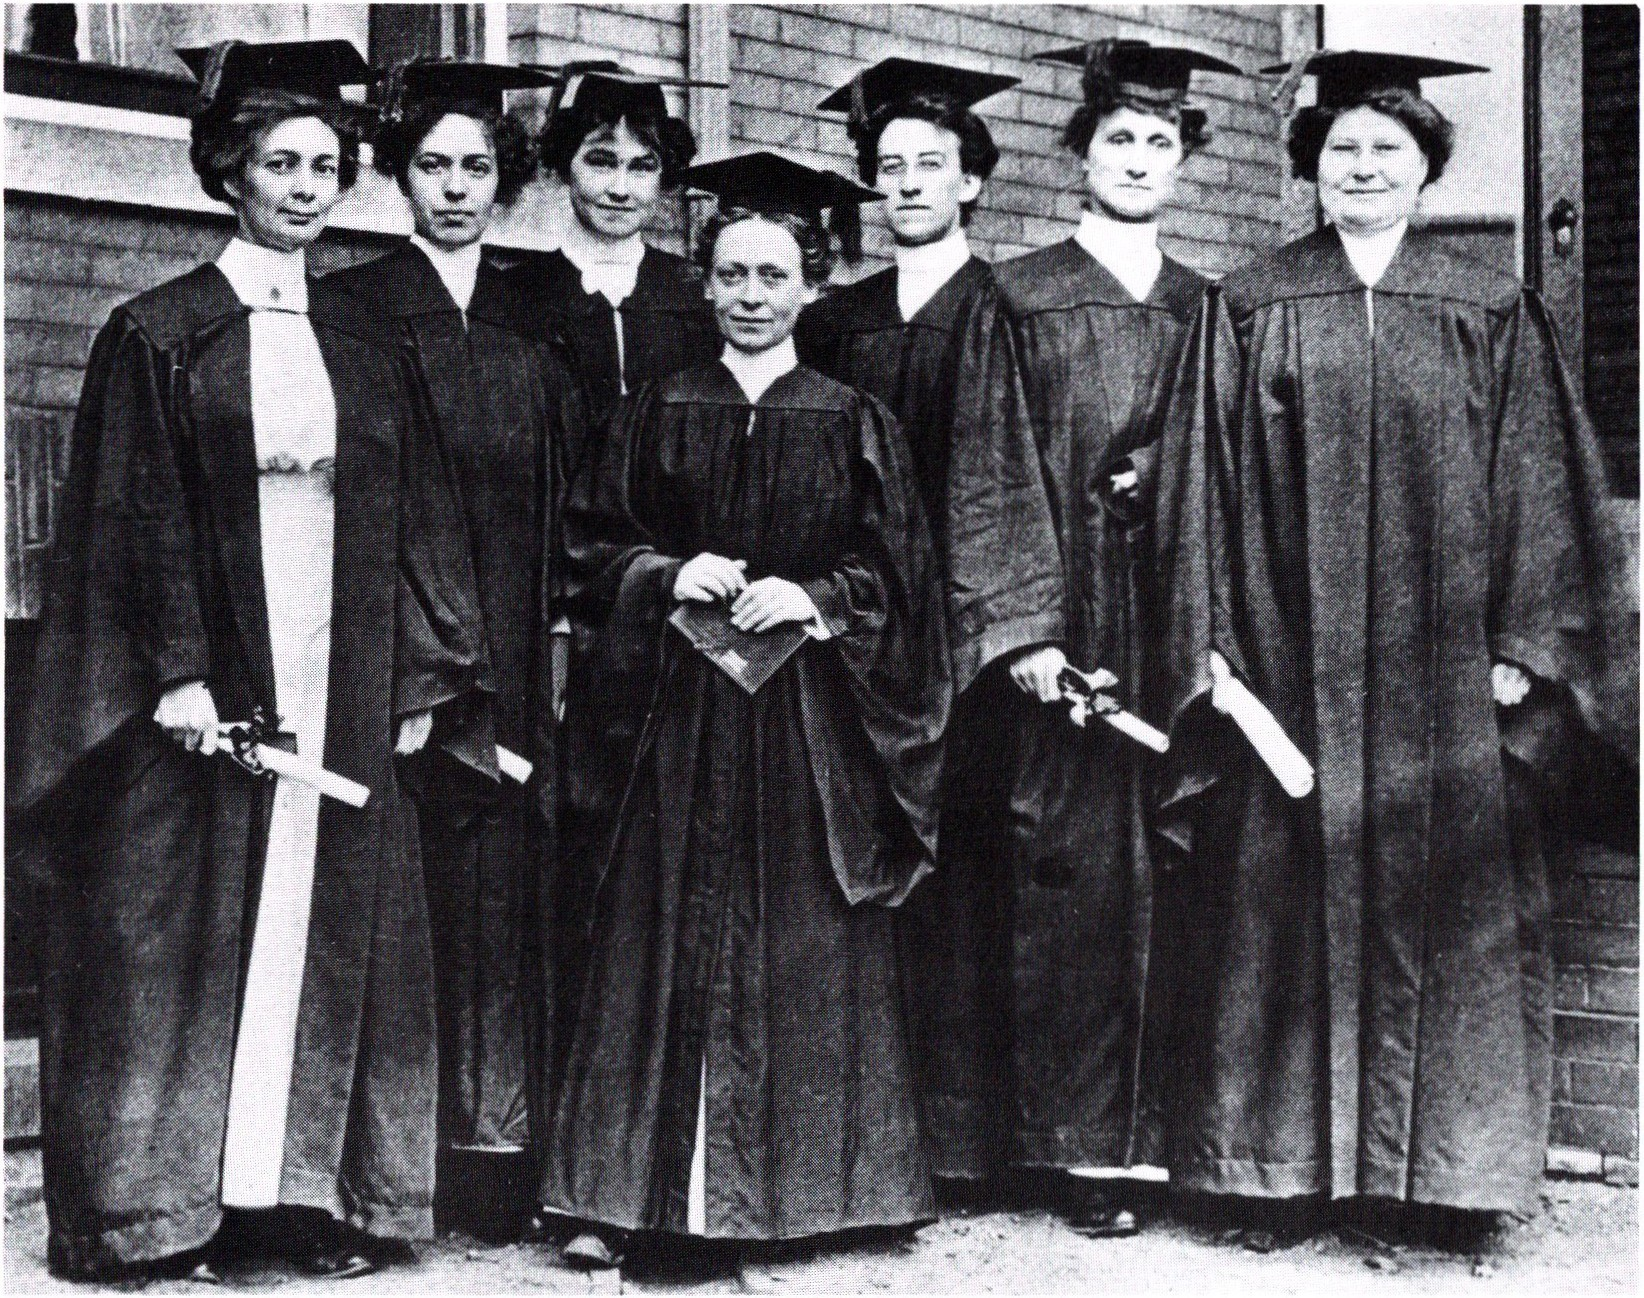 Louis Powell with UofM nursing class 1912